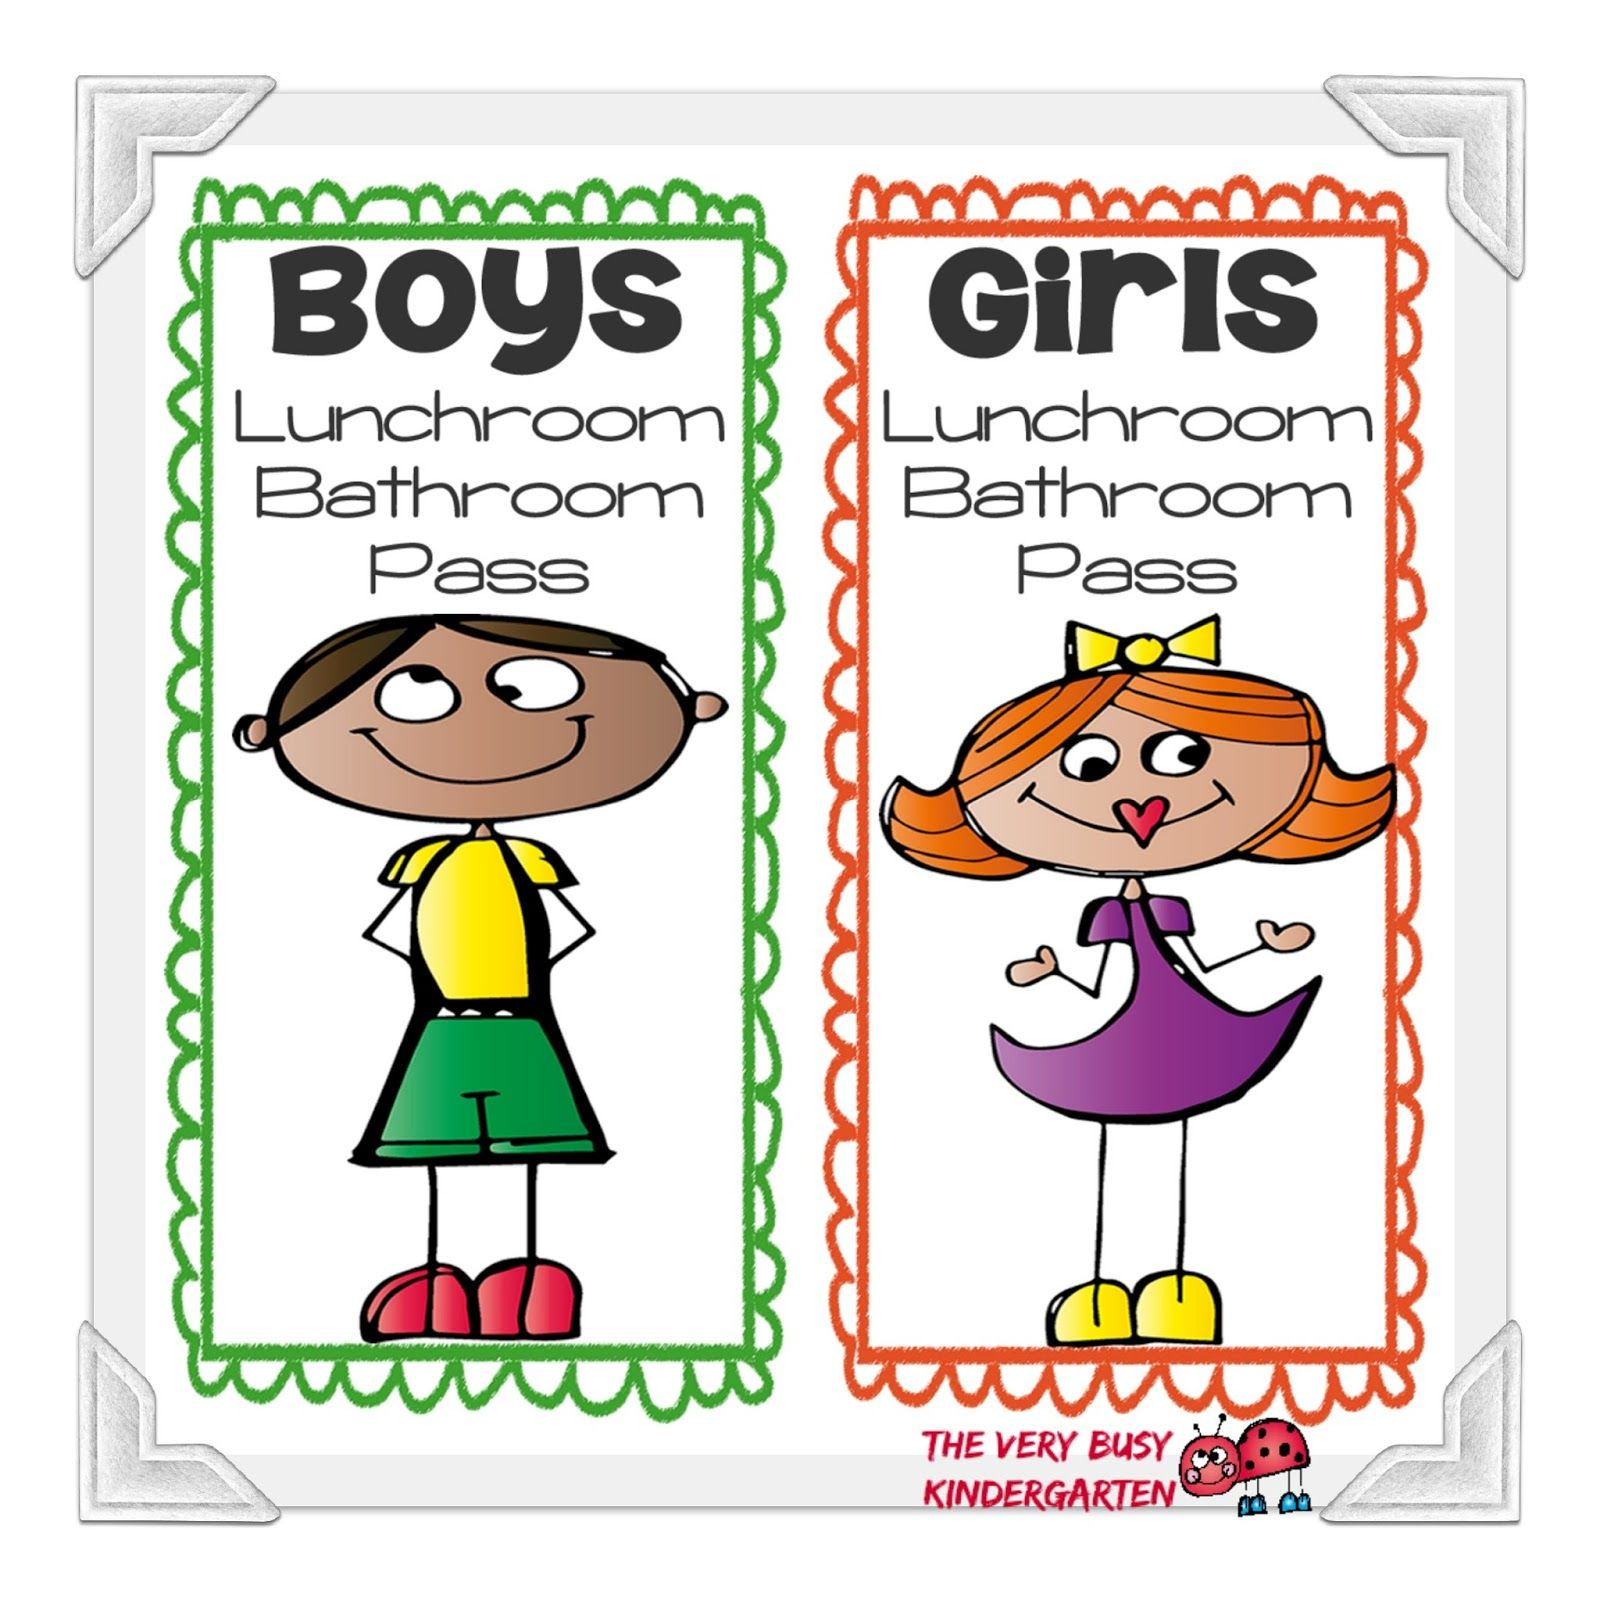 Toilet clipart pass - Pencil and in color toilet clipart pass   Restroom  pass, Bathroom pass, School restroom